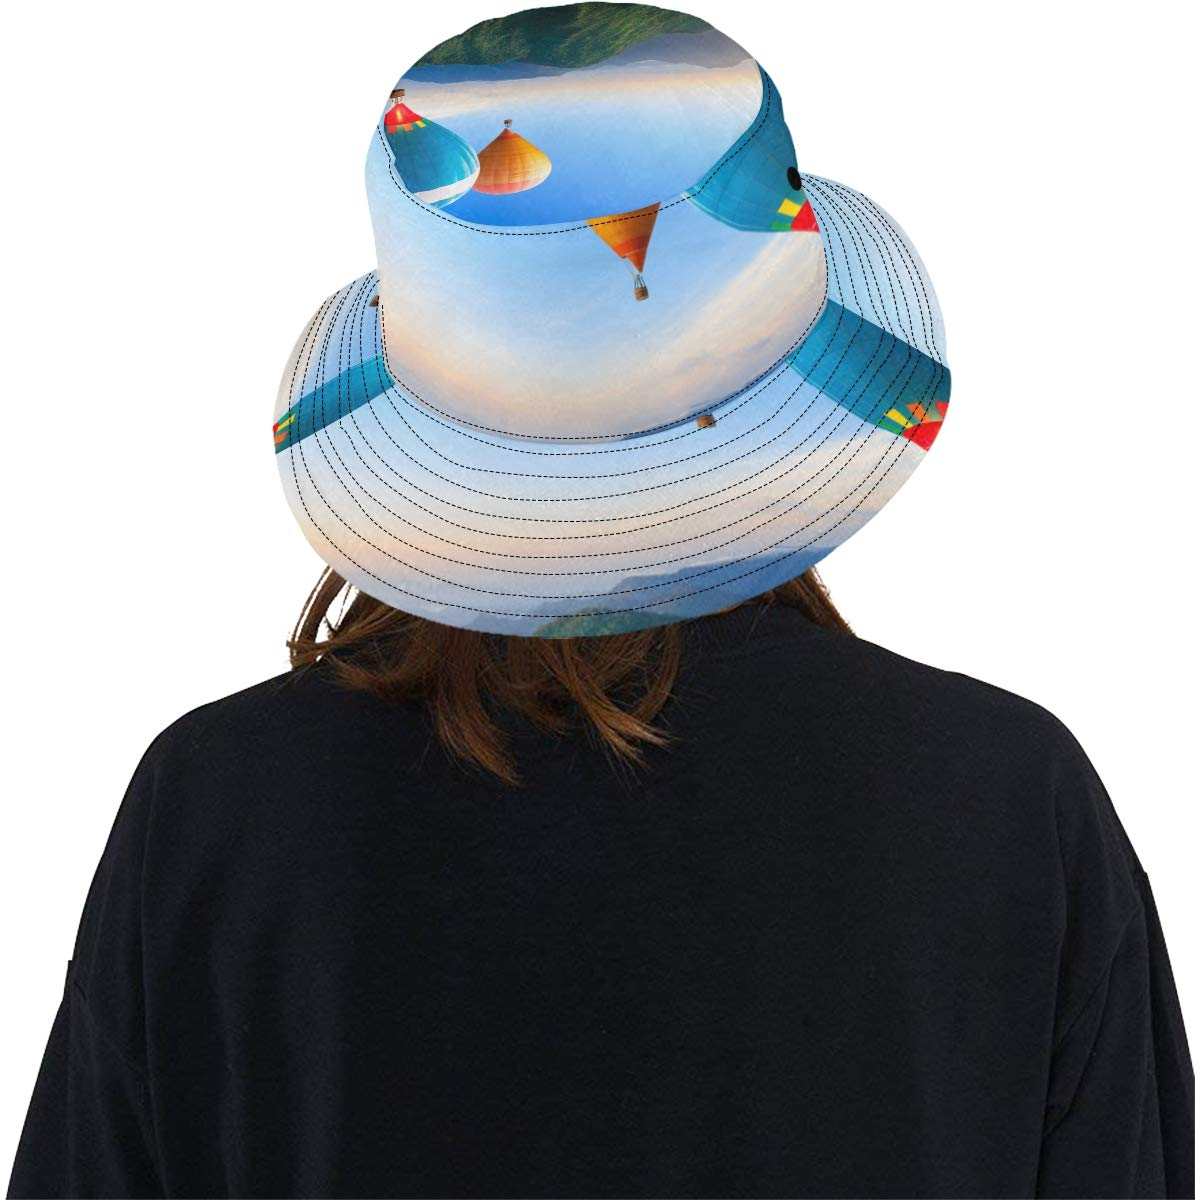 Teens Colorful Sky Hot Air Ballon New Summer Unisex Cotton Fashion Fishing Sun Bucket Hats for Kid Women and Men with Customize Top Packable Fisherman Cap for Outdoor Travel